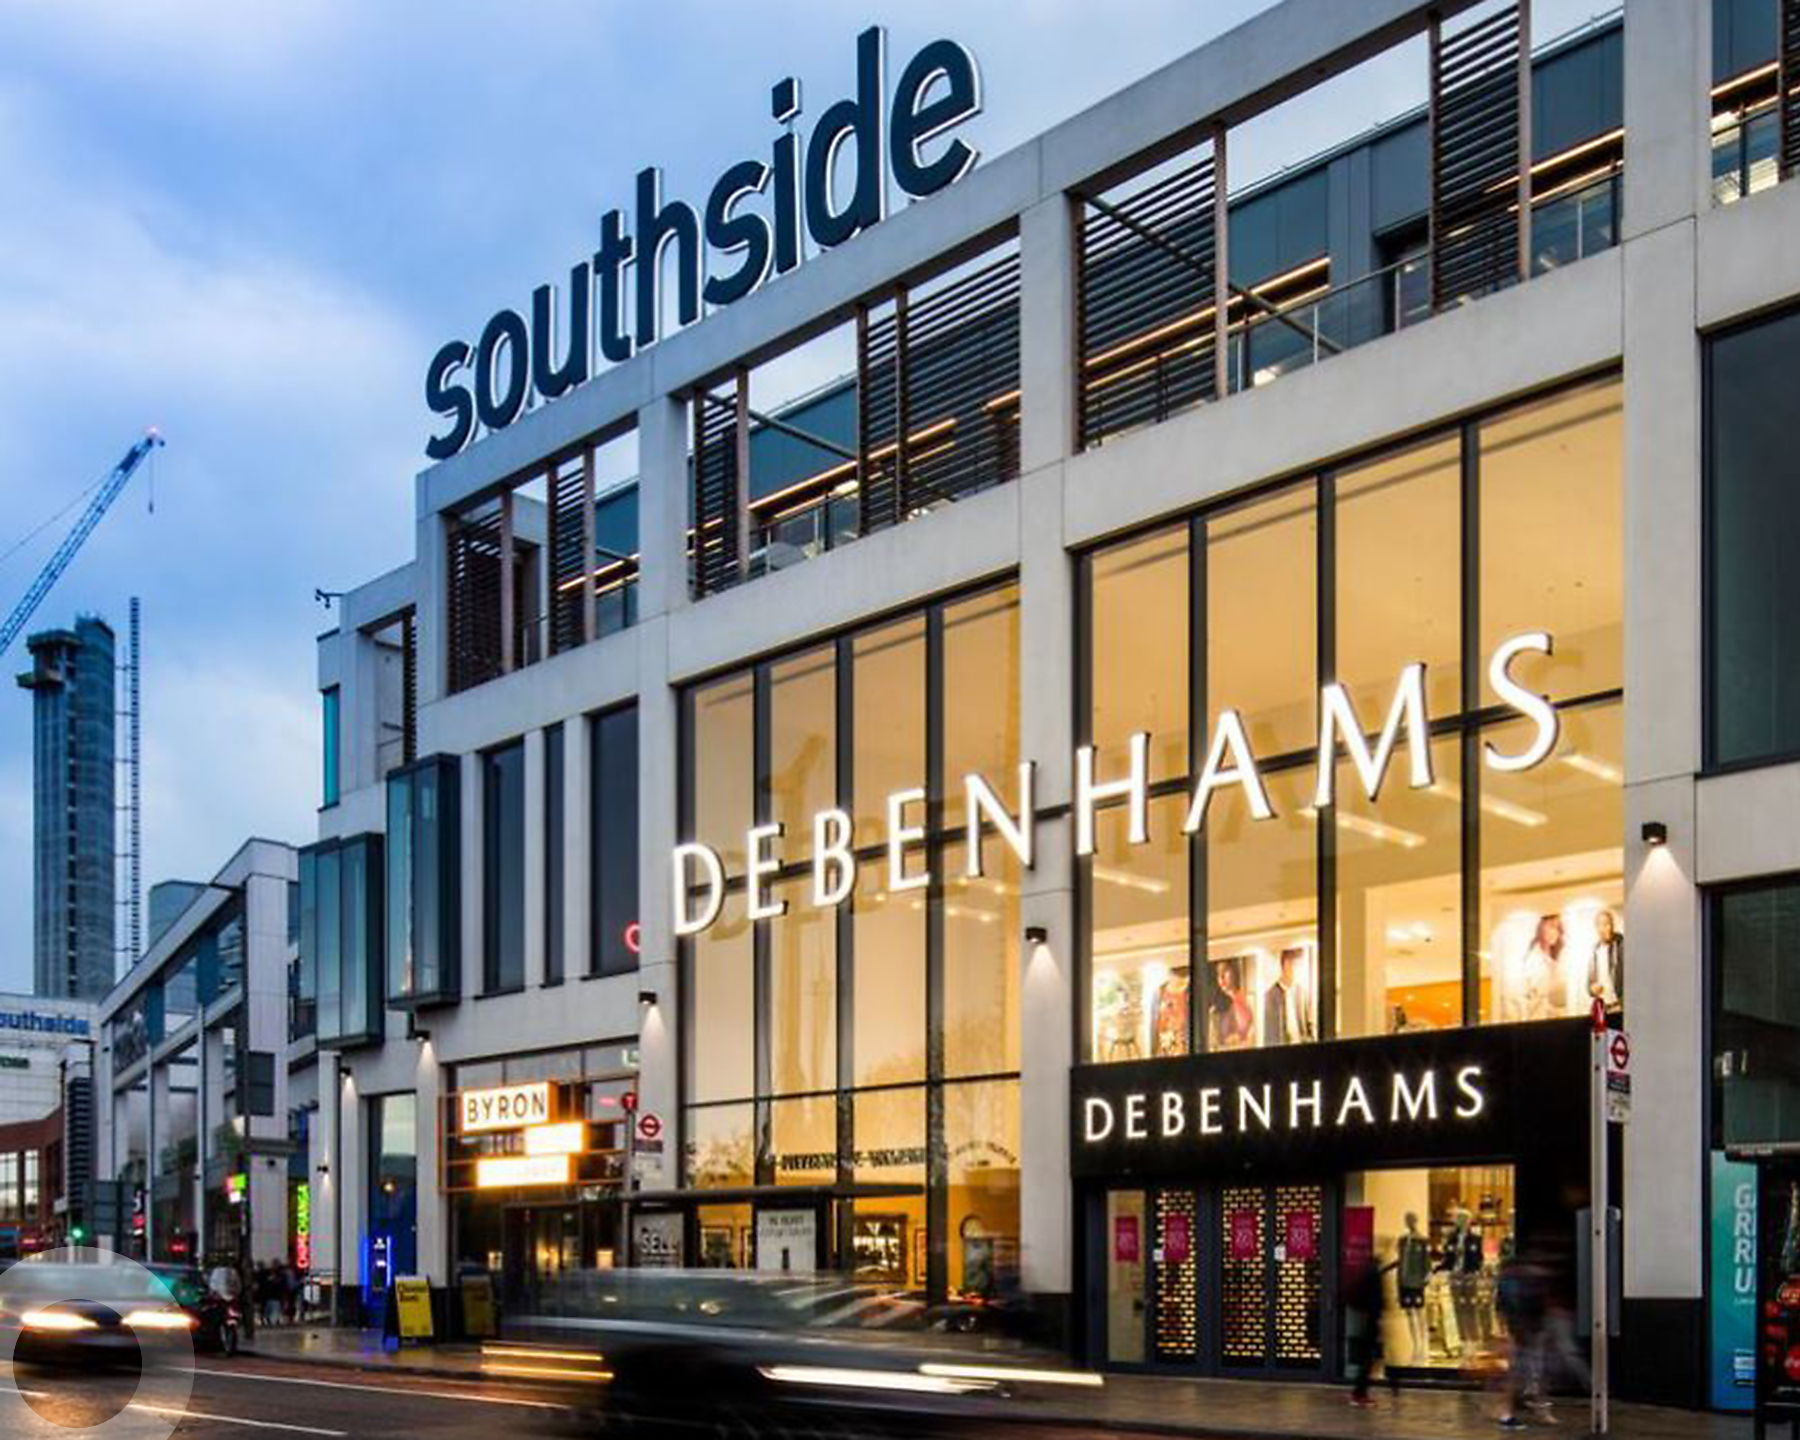 CG_Southside_Shopping_Centre_Wandsworth_picture_2019-06-11-10-24-56_p8_1800x1440